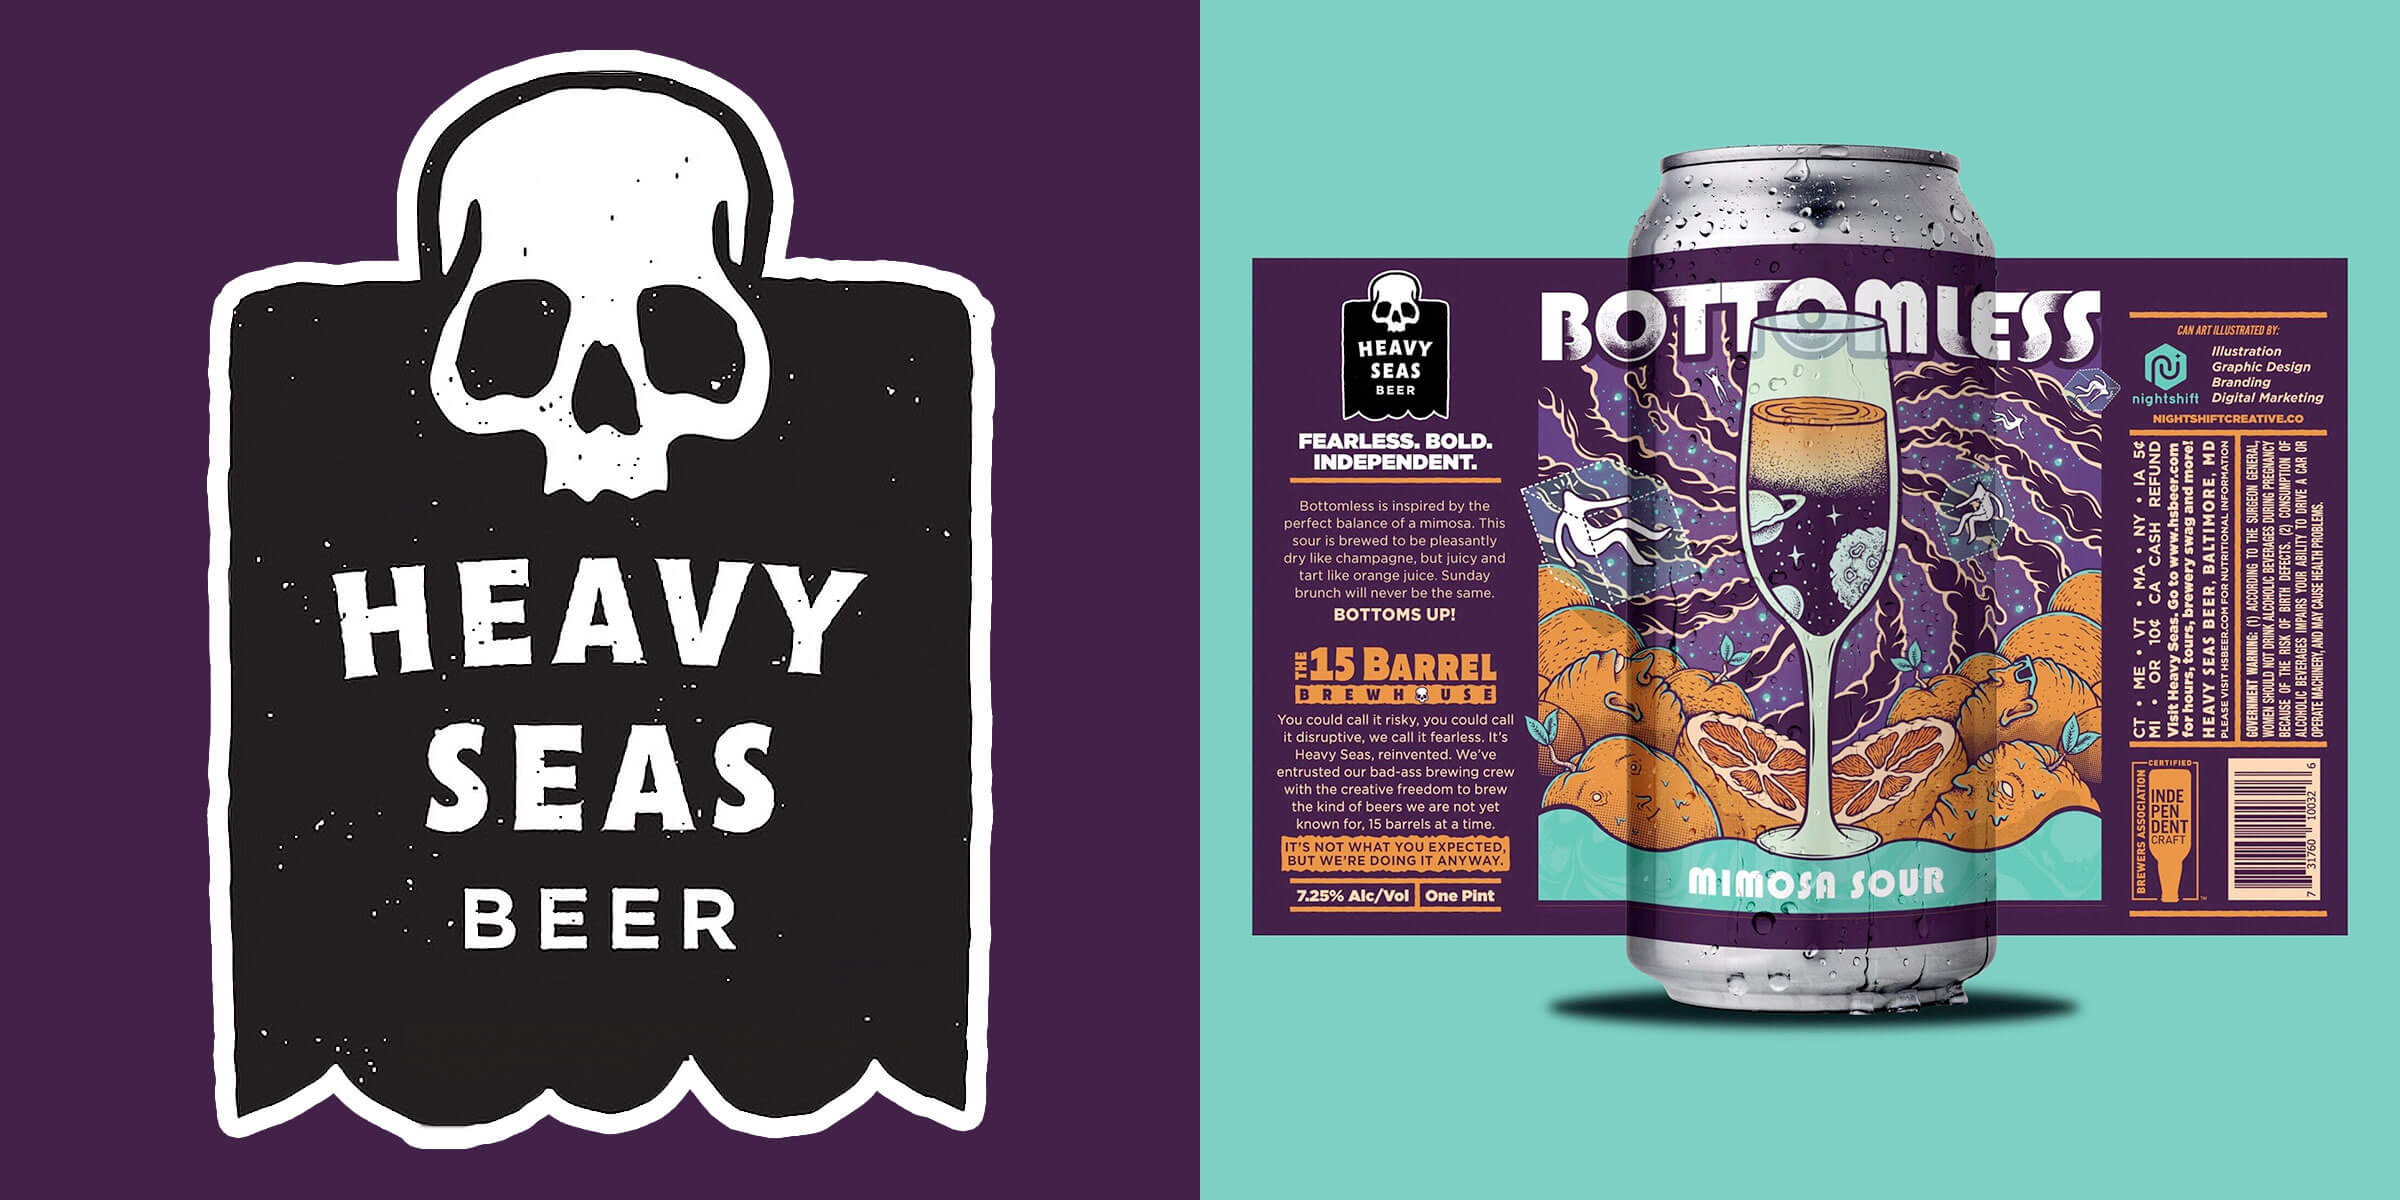 Heavy Seas Beer is excited to announce the second release from its 15 Barrel Brewhouse in 2020, Bottomless, a Mimosa Sour.